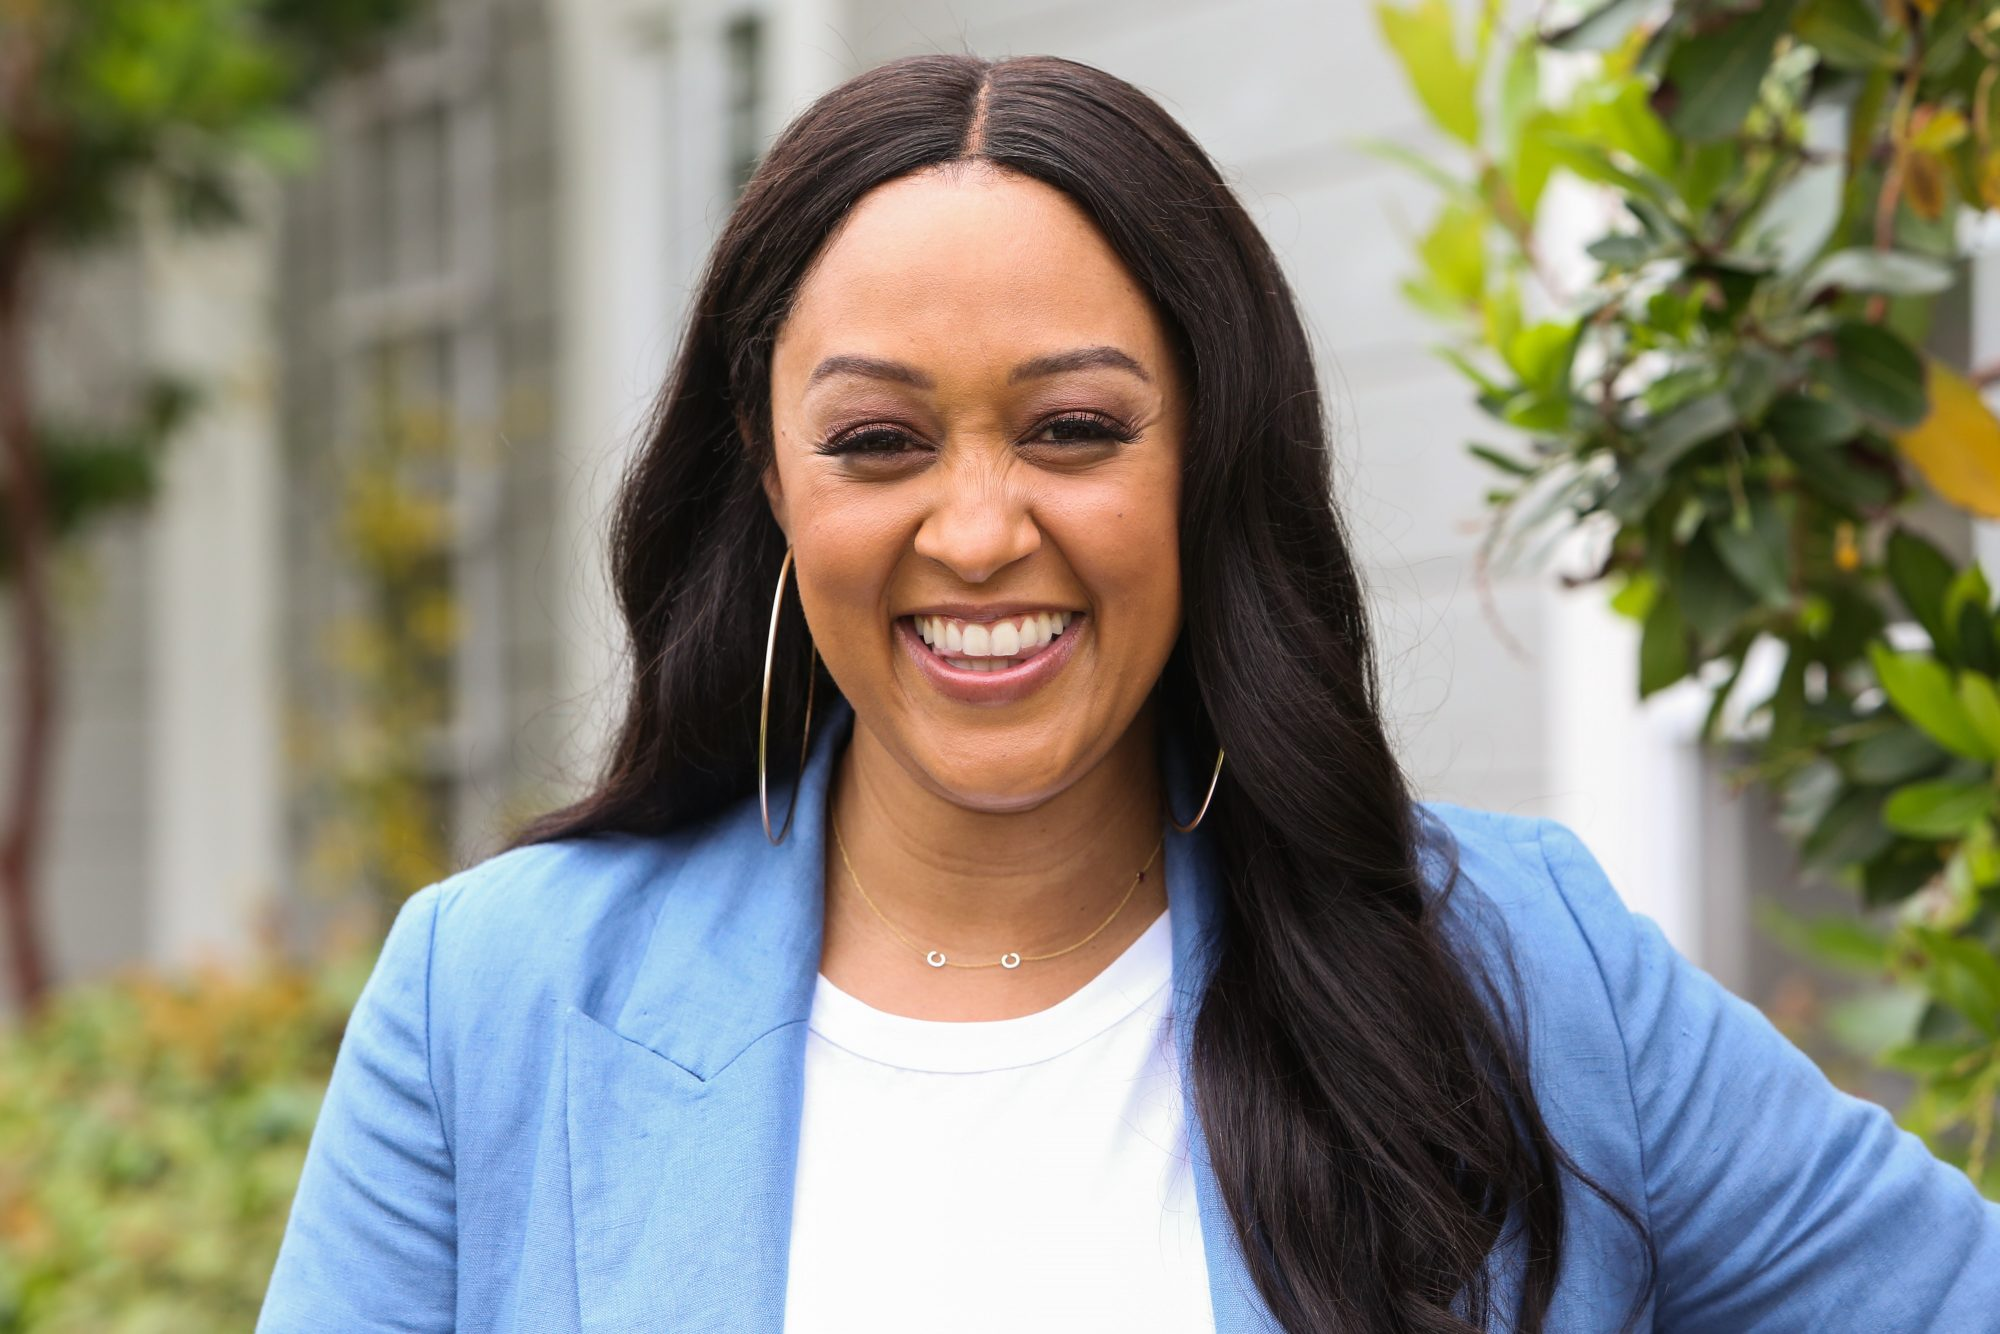 tia mowry gray hair natural hair